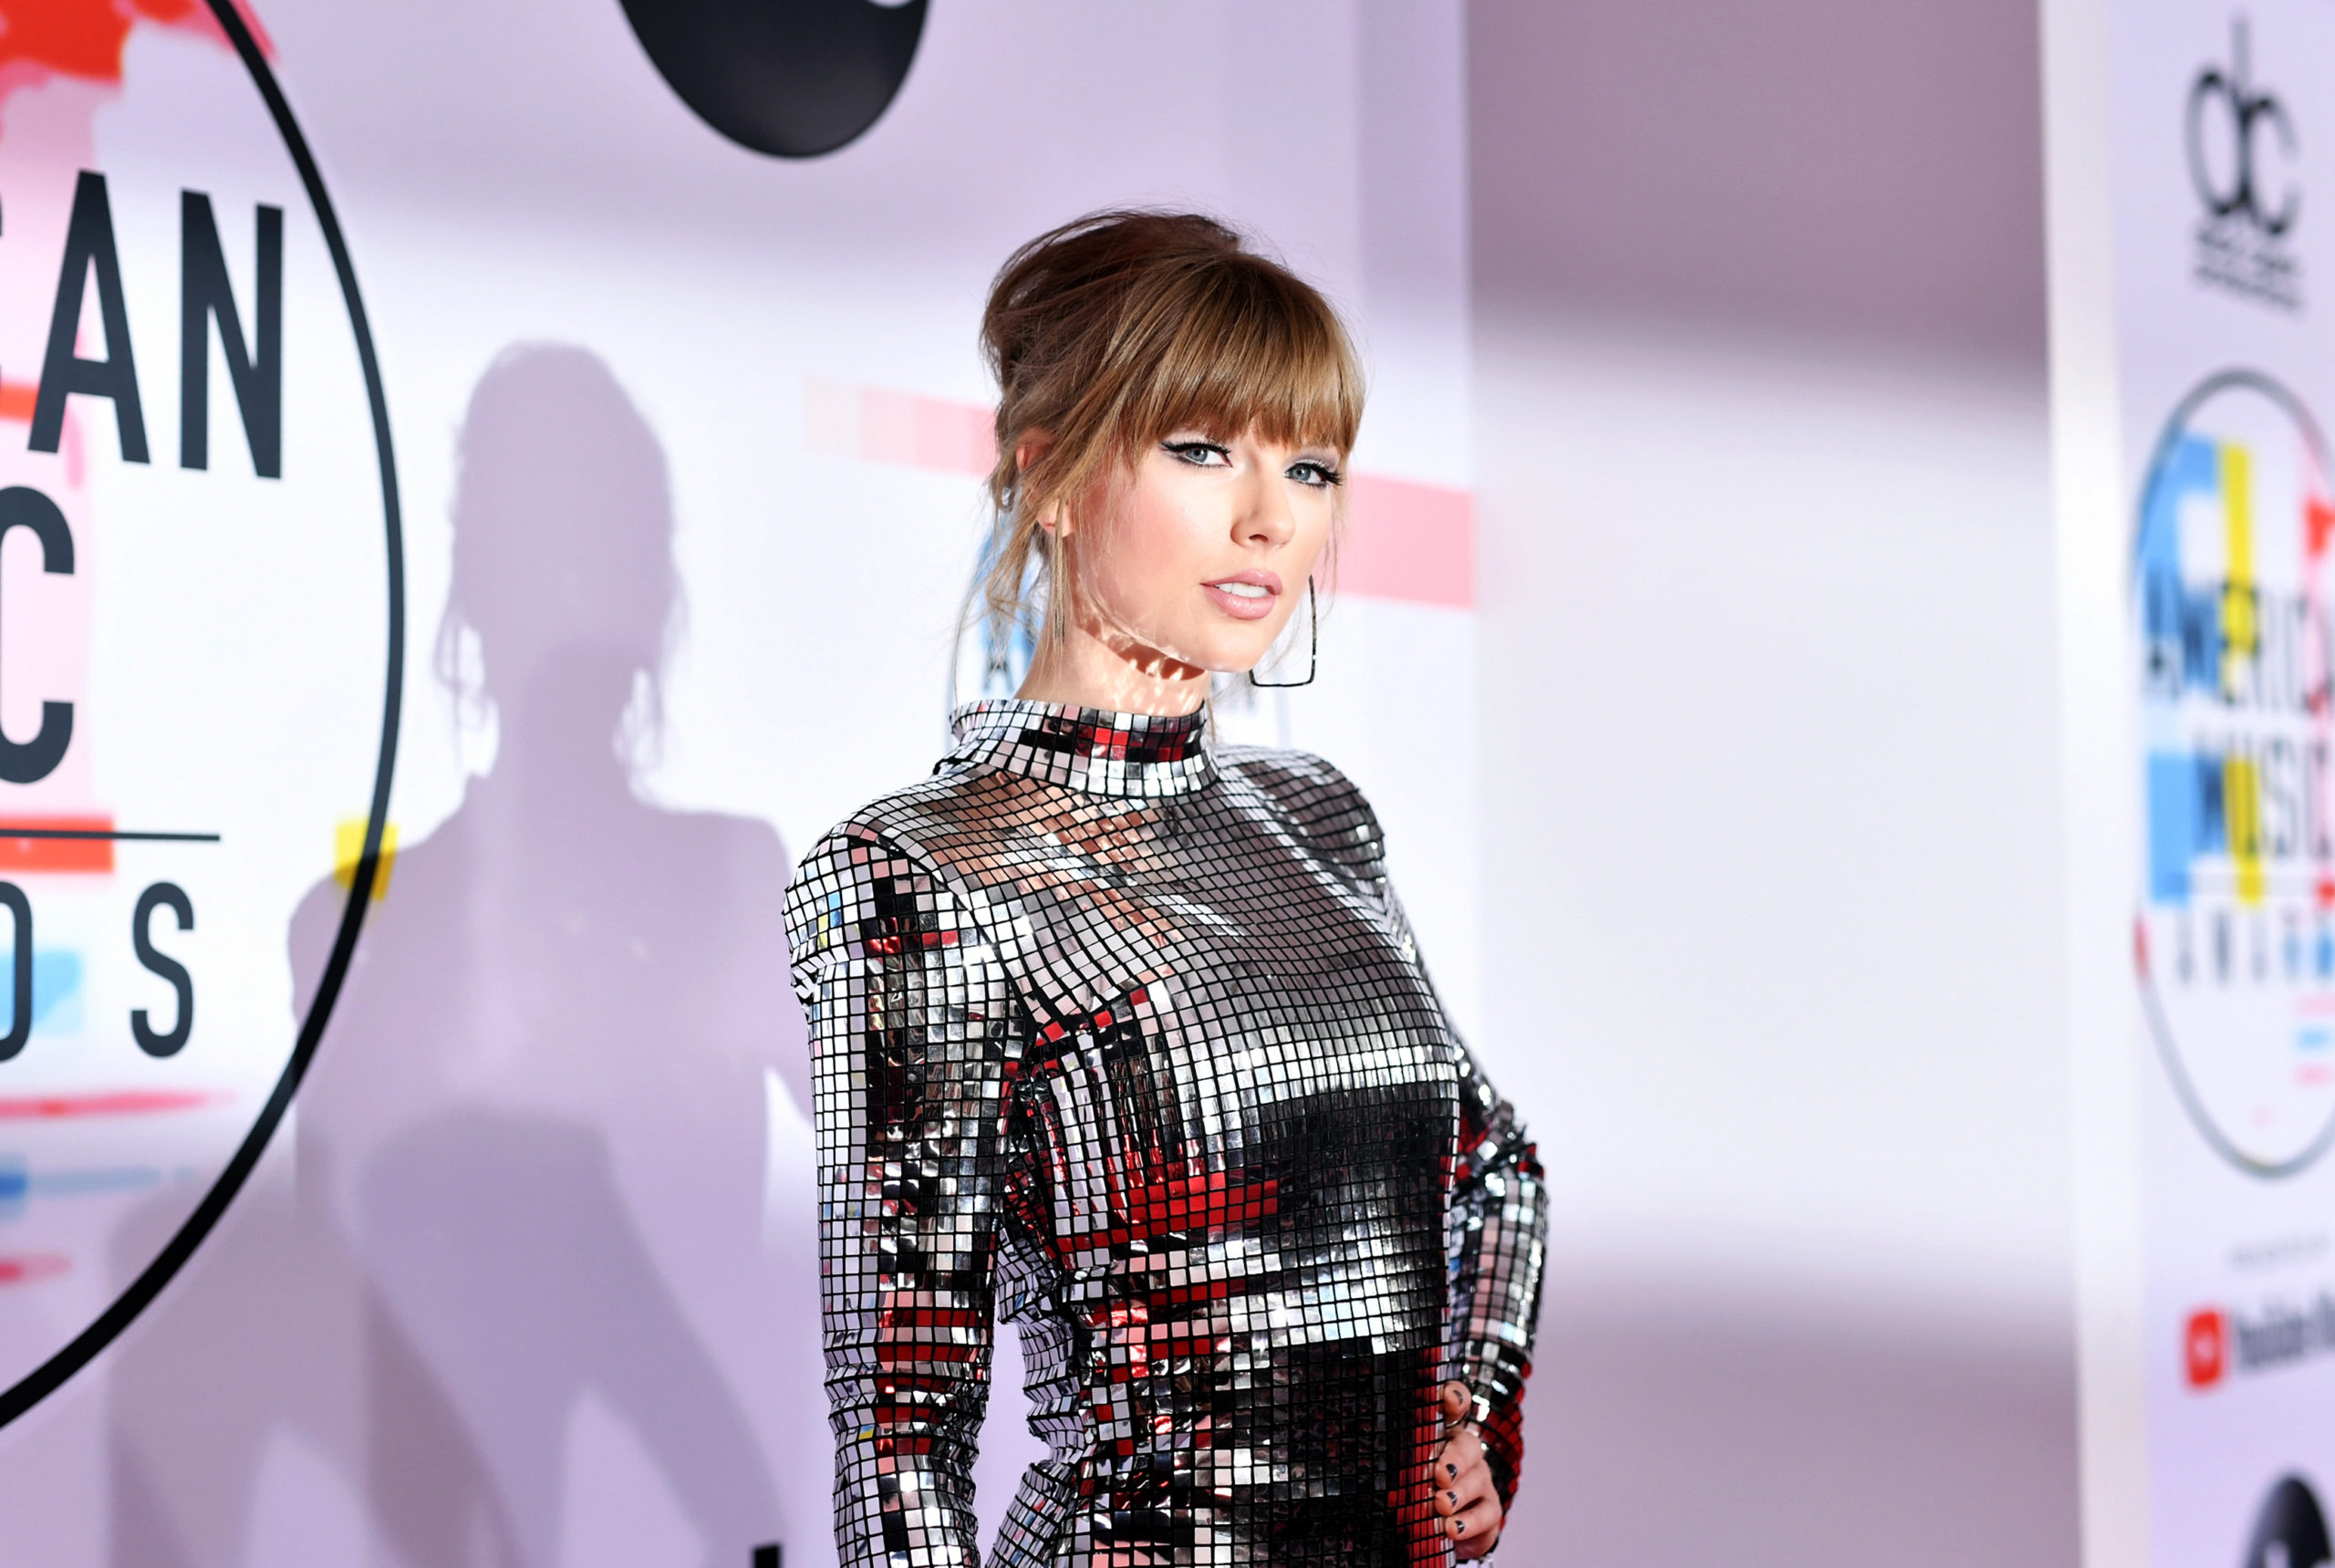 Taylor Swift will release surprise album 'Folklore' Friday